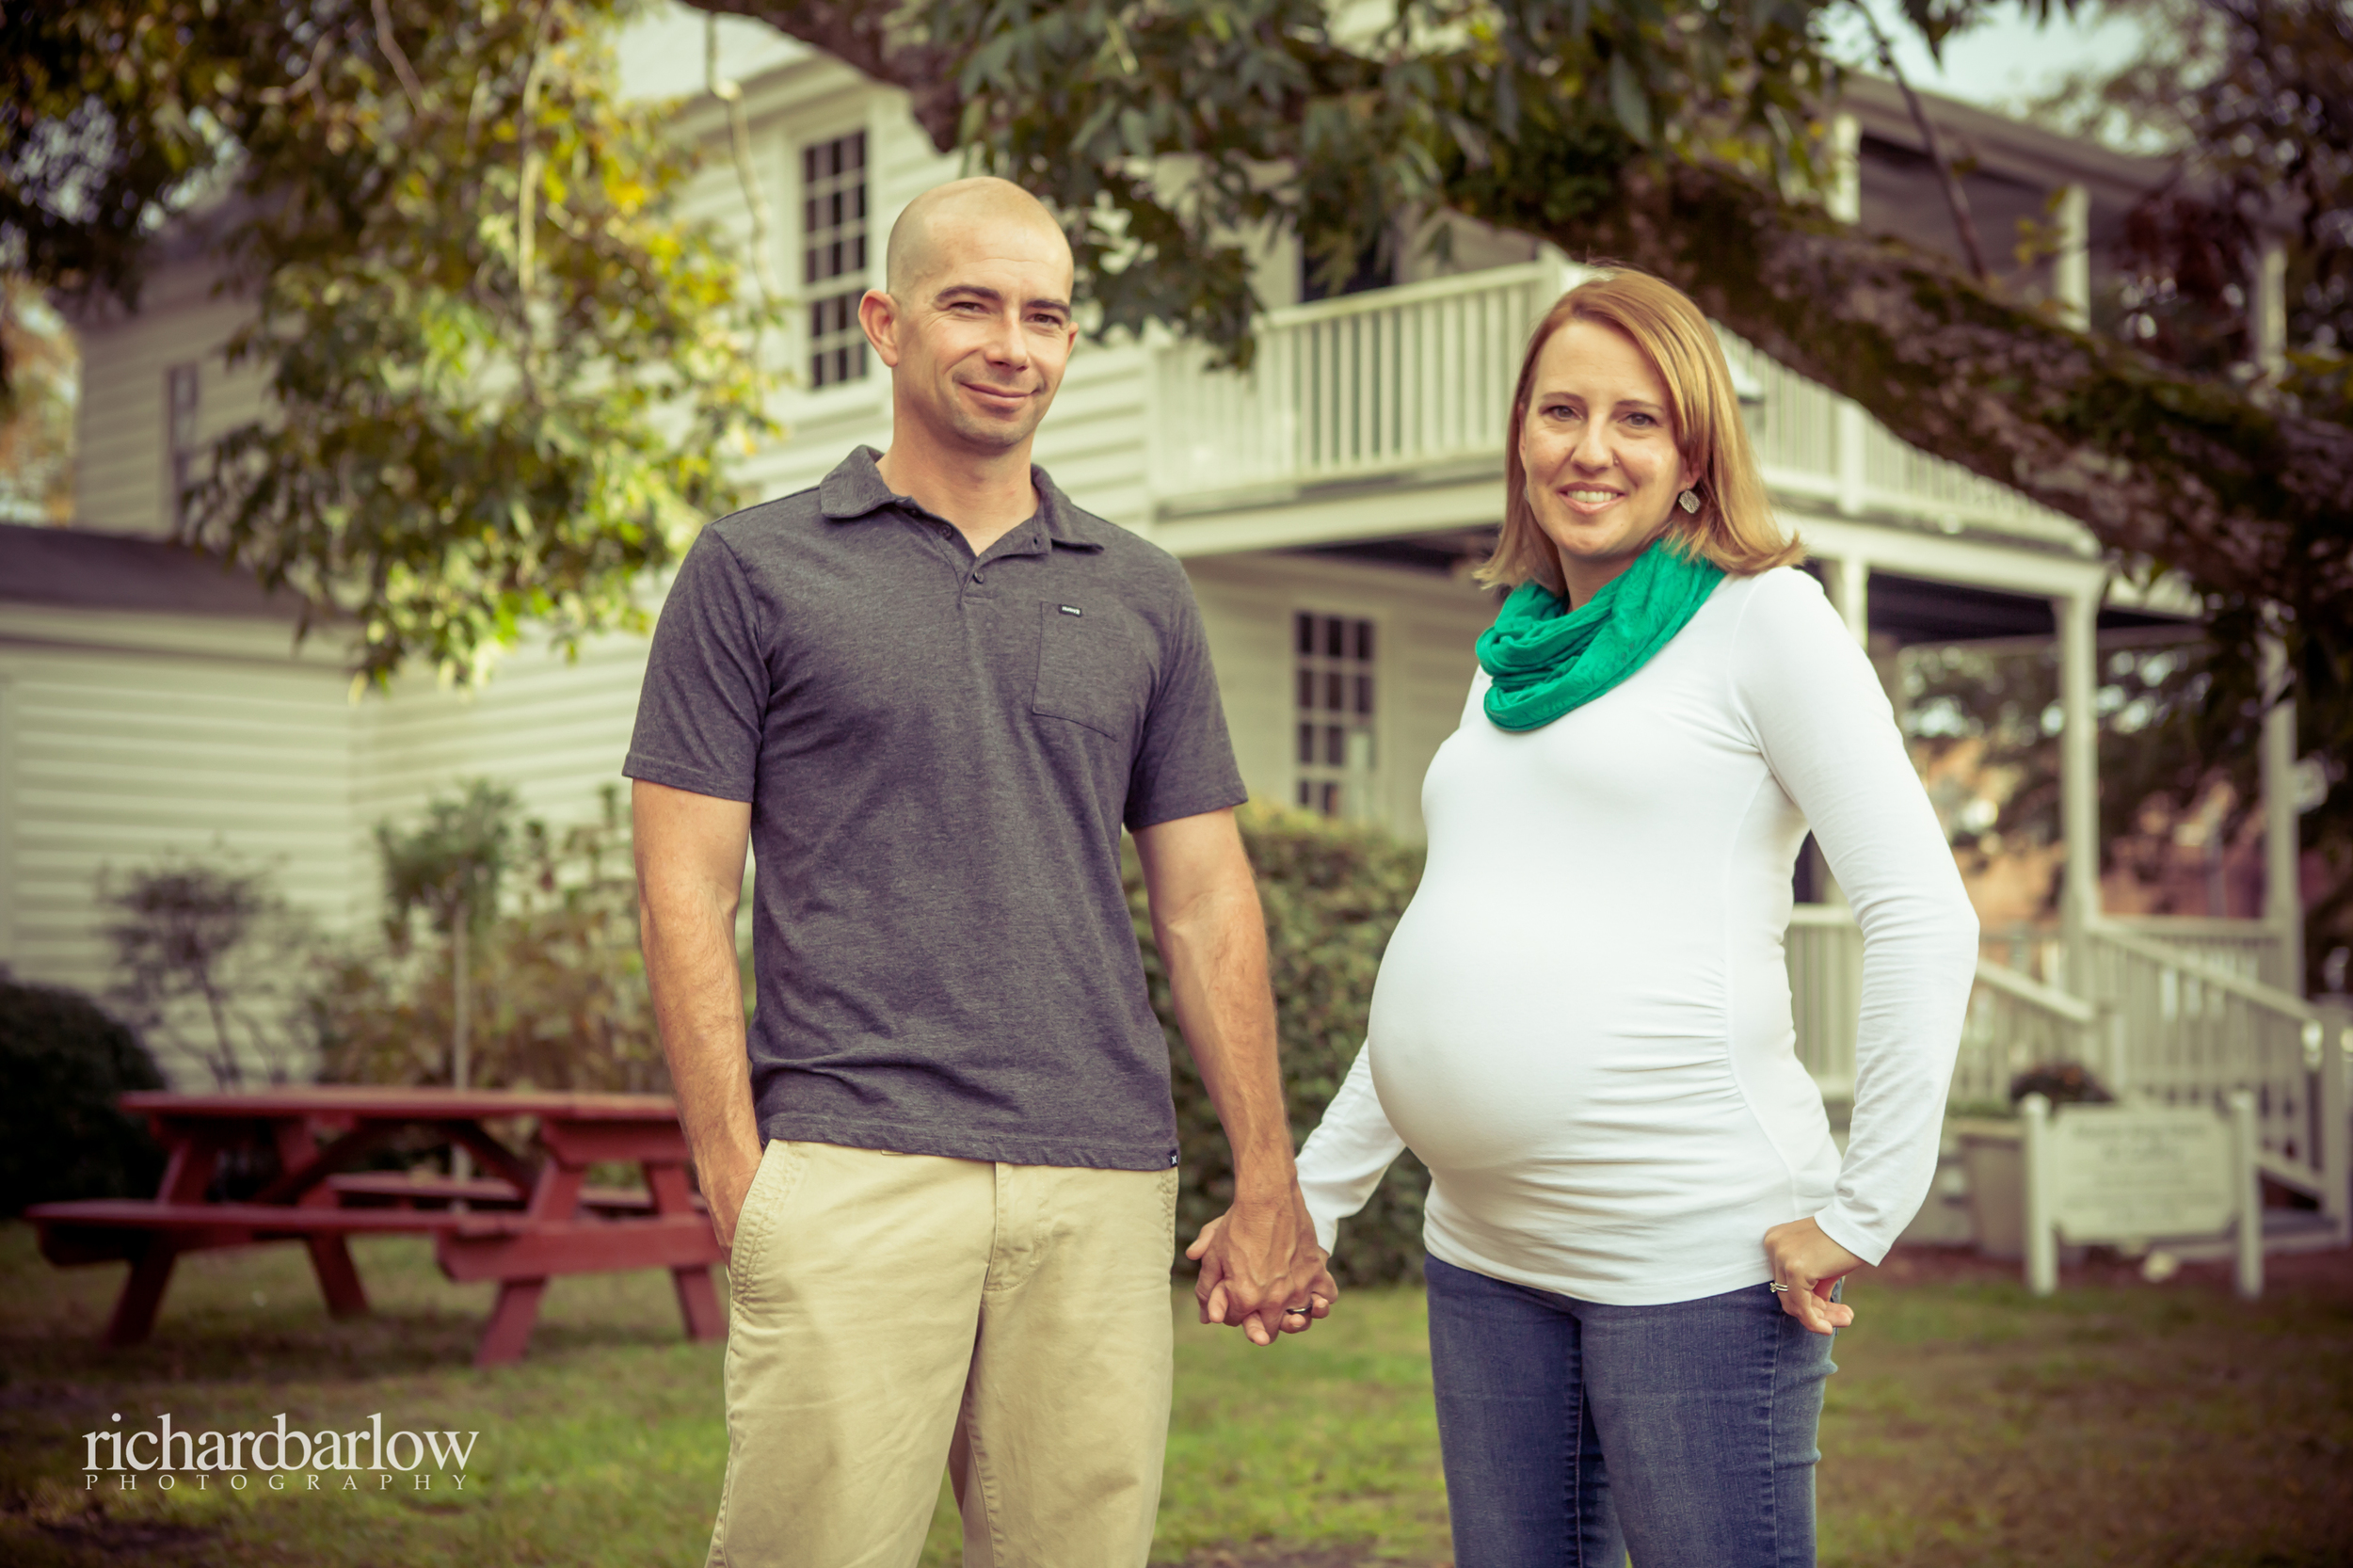 richard barlow photography - Sarah Maternity Session - Beaufort waterfront-8.jpg